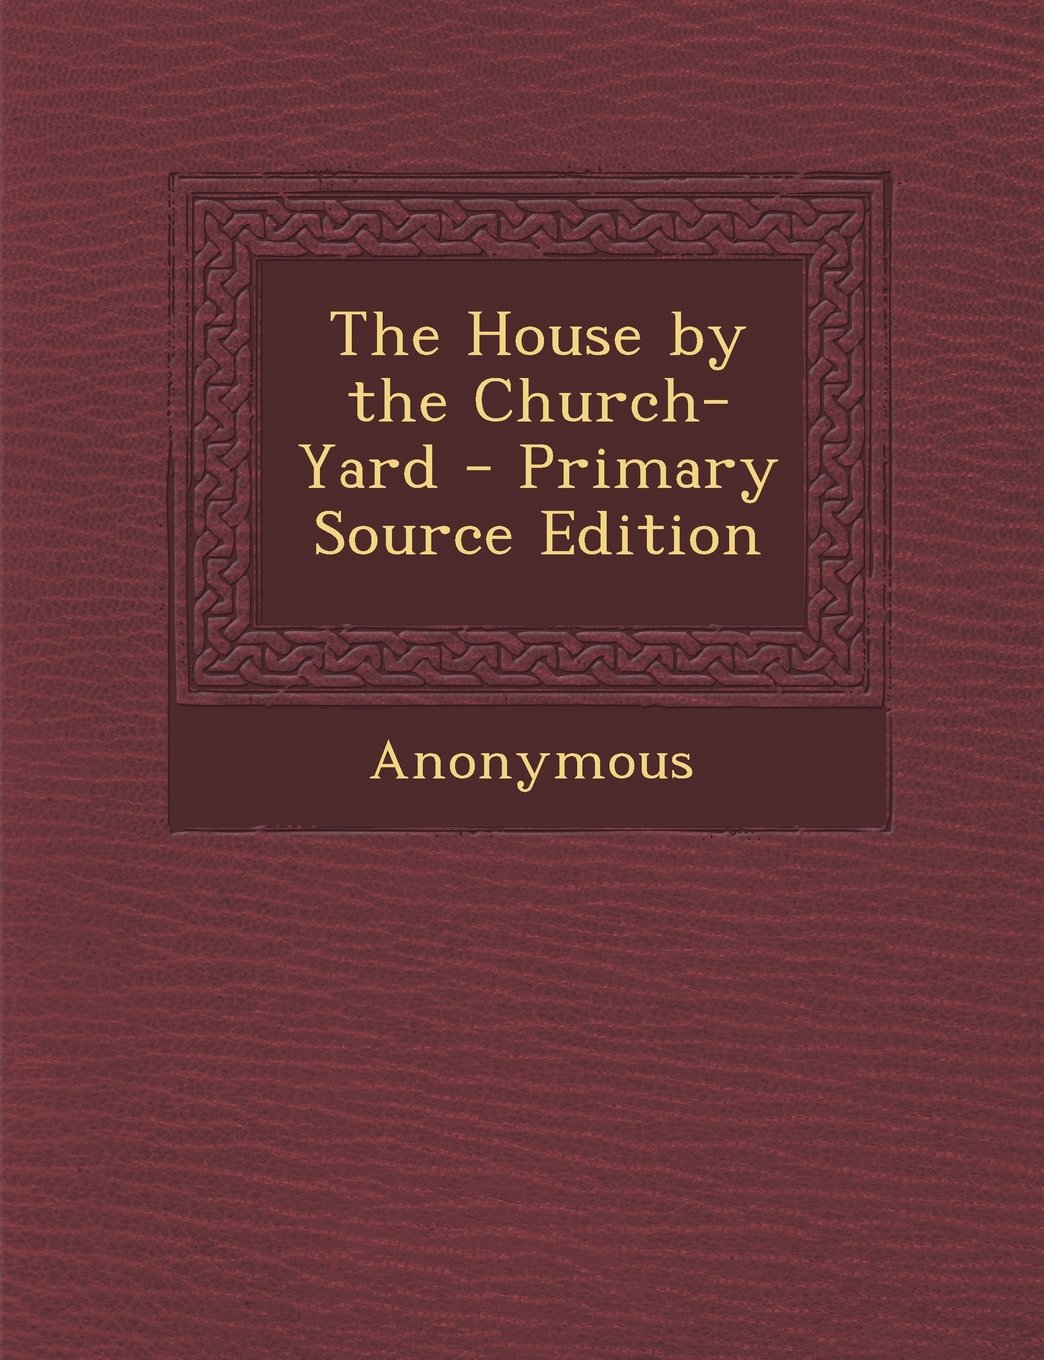 The House by the Church-Yard - Primary Source Edition pdf